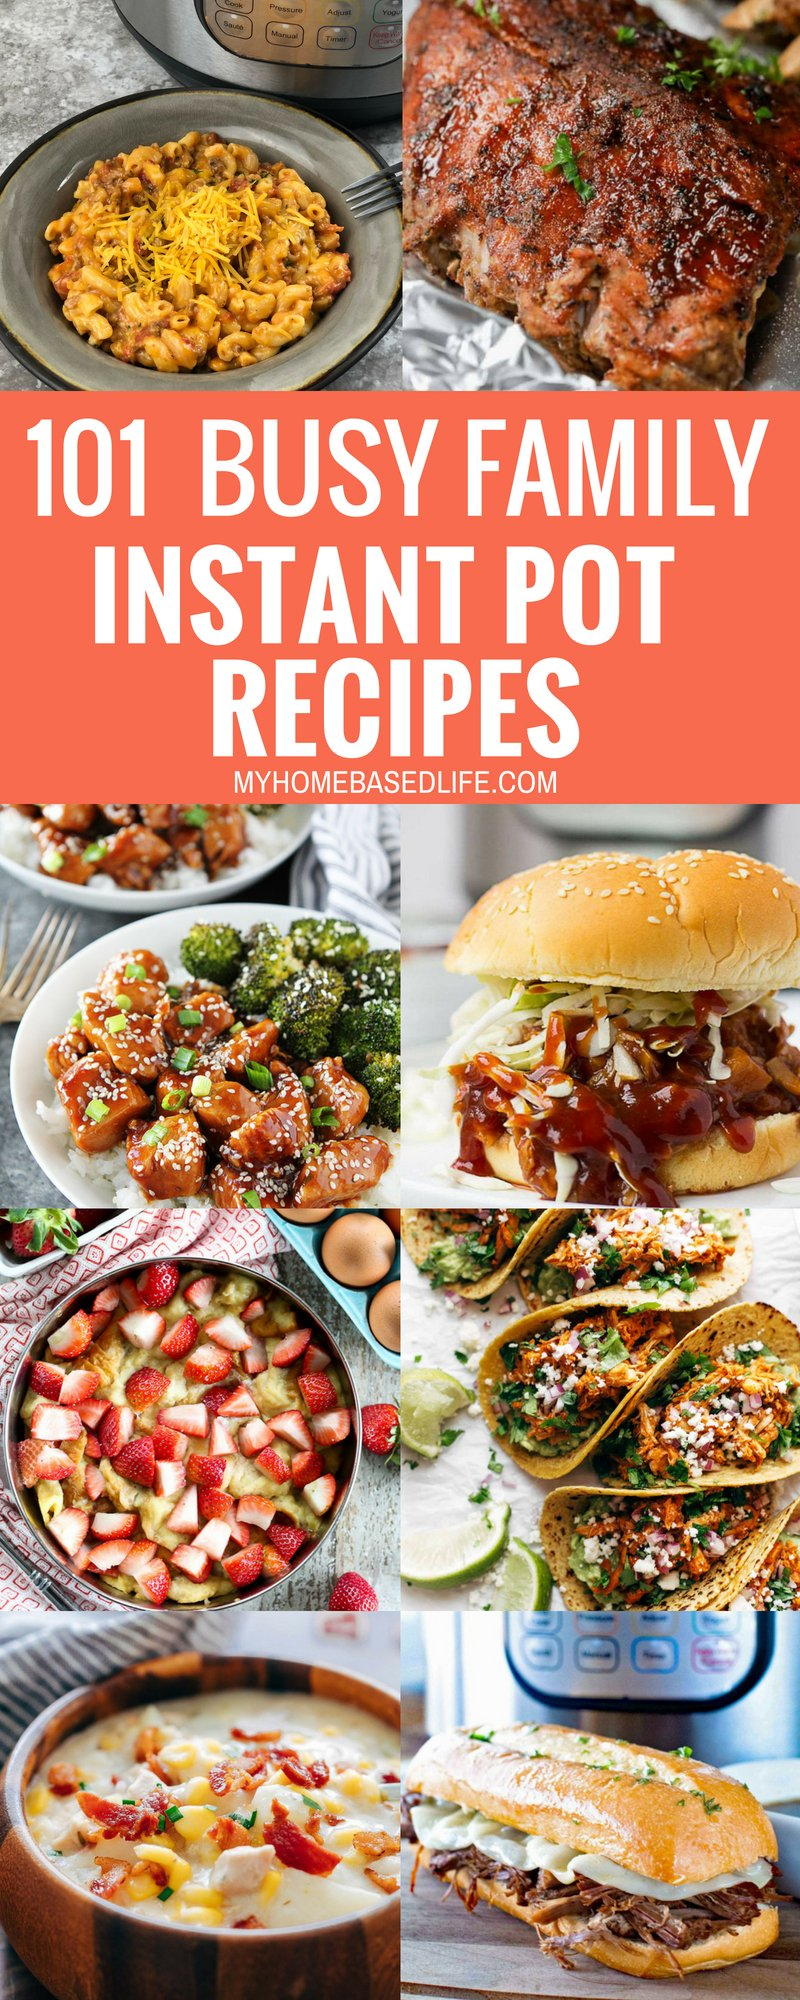 This is a one-stop shop for all the Instant Pot recipes you'll ever need. Pick out one of these 101 IP recipes and have a great dinner in minutes! #instantpot #dinner #easydinners #busyfamily #tasty #myhomebasedlife | Instant Pot Recipes | Busy Family Meals | Dinner Recipes | Easy Dinner Ideas |